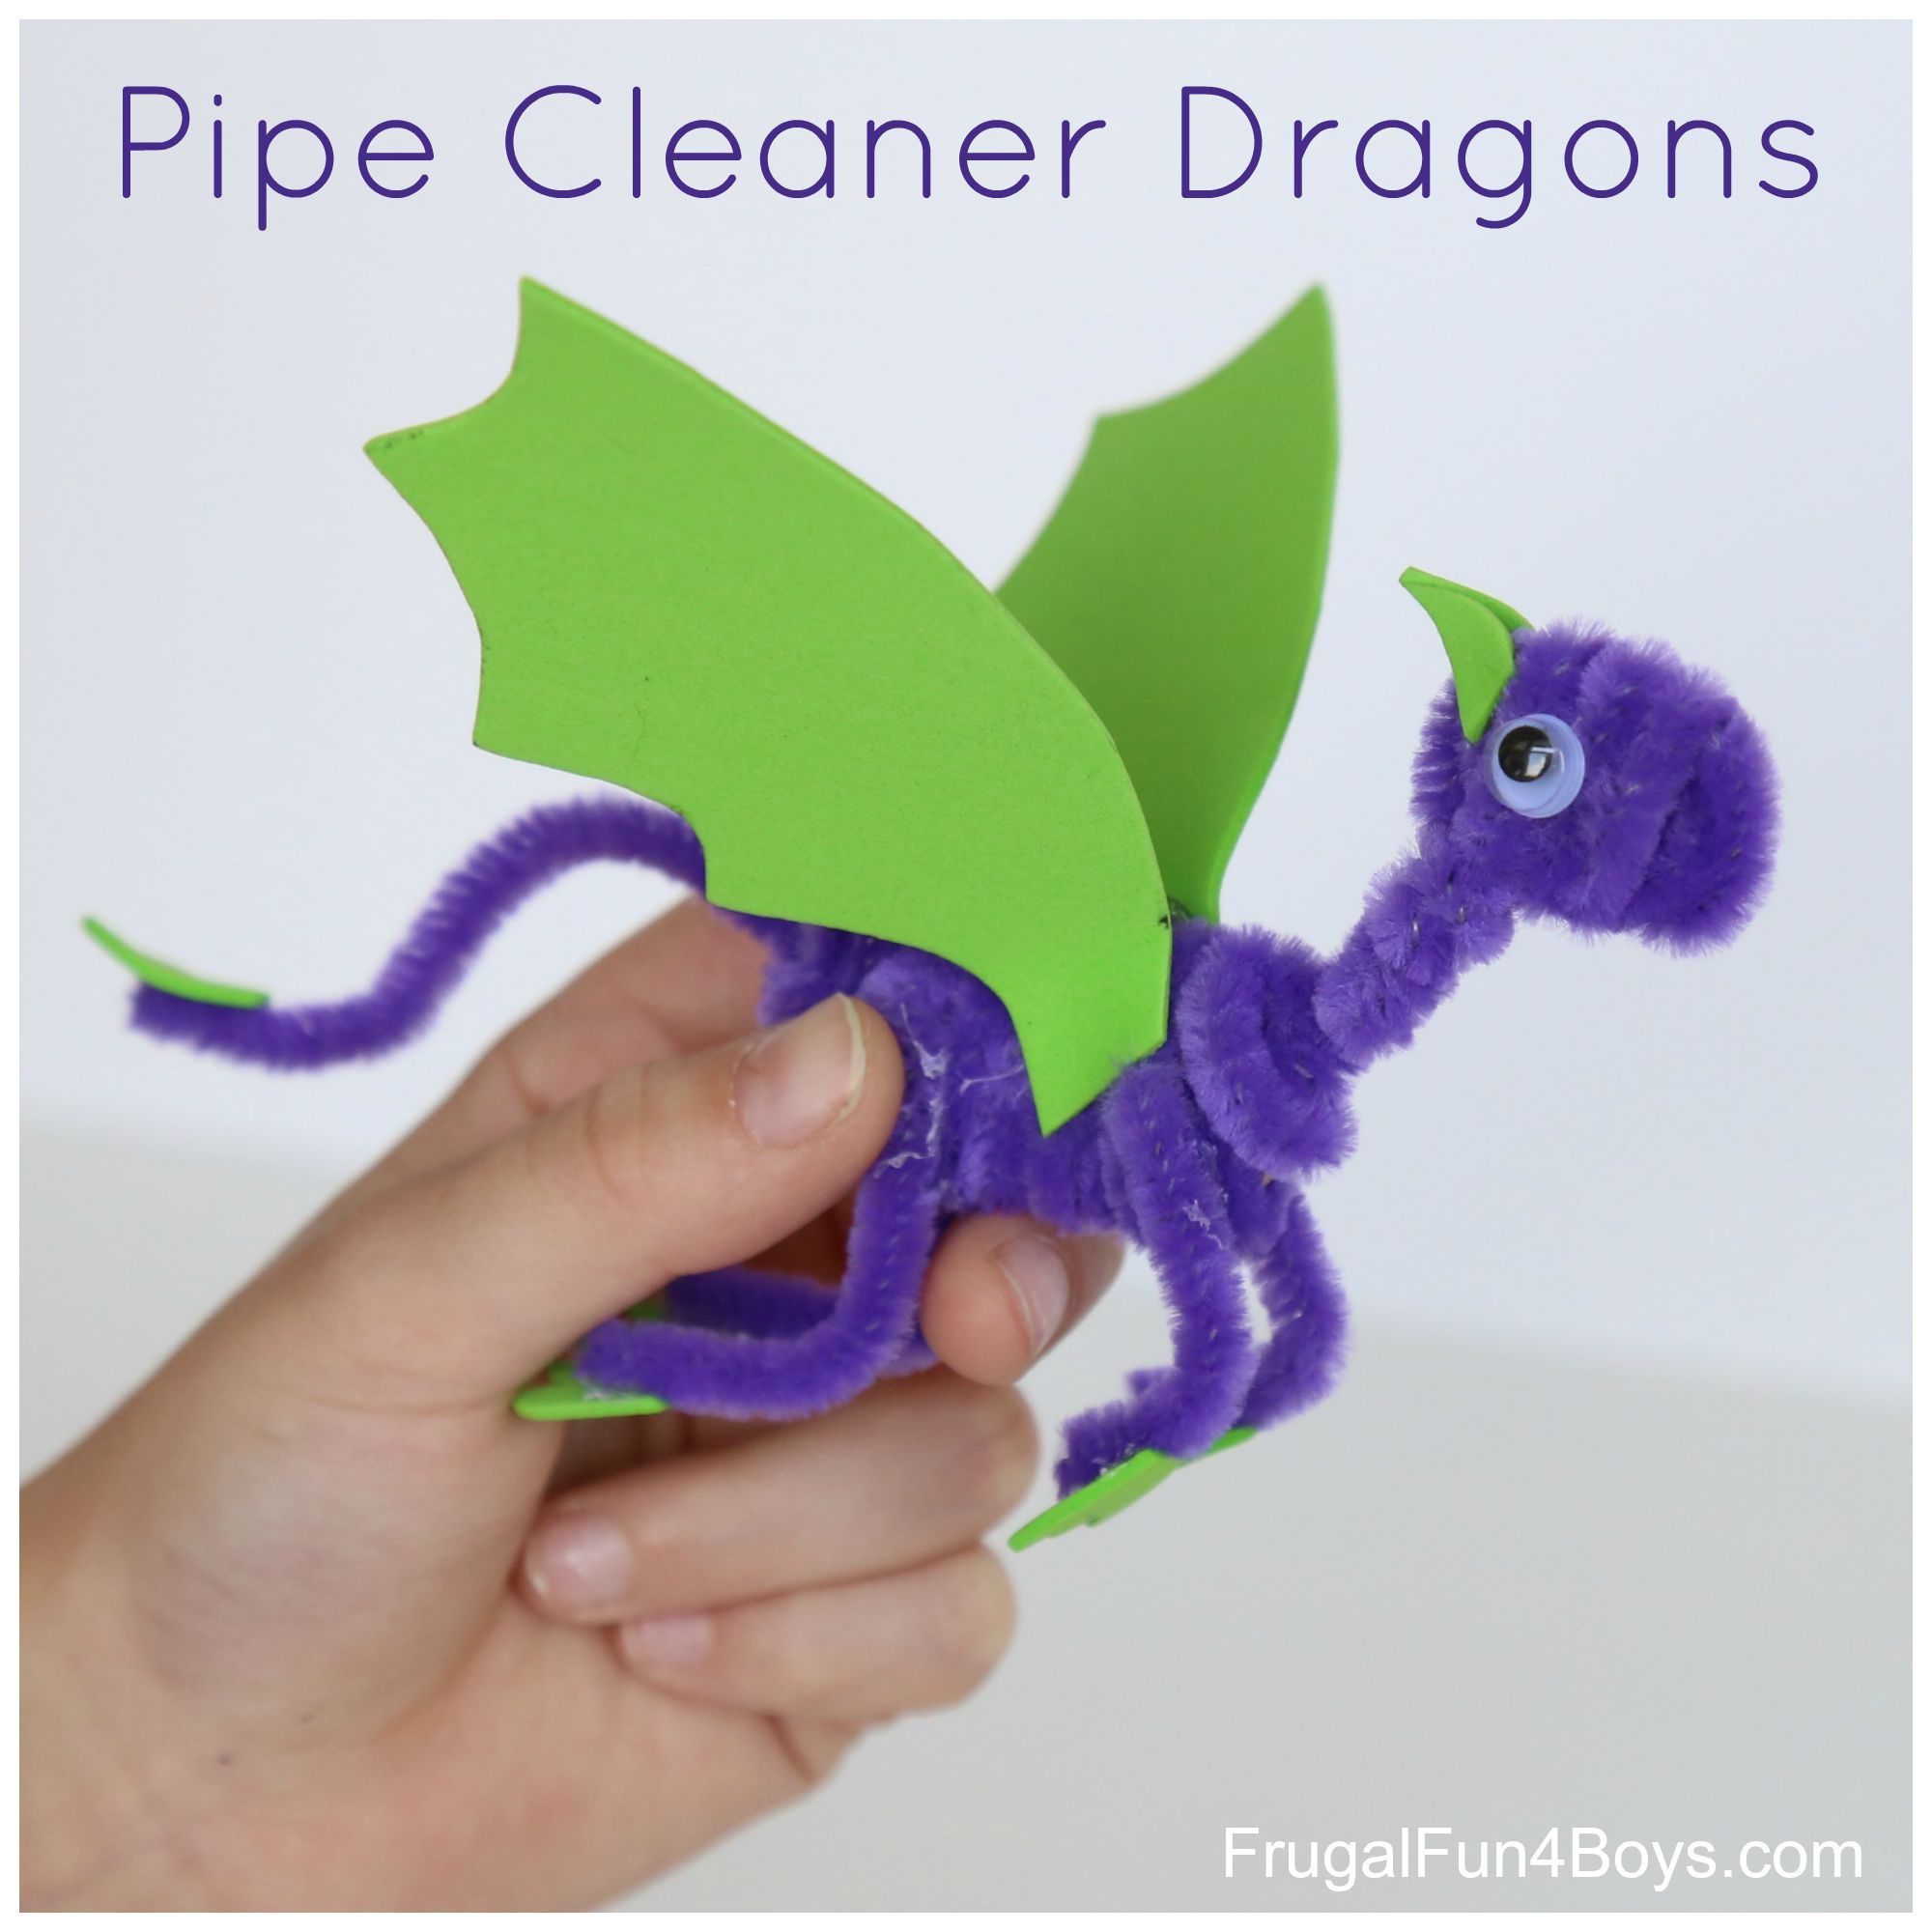 Pipe cleaners arts and crafts - Pipe Cleaner Dragons Craft For Kids